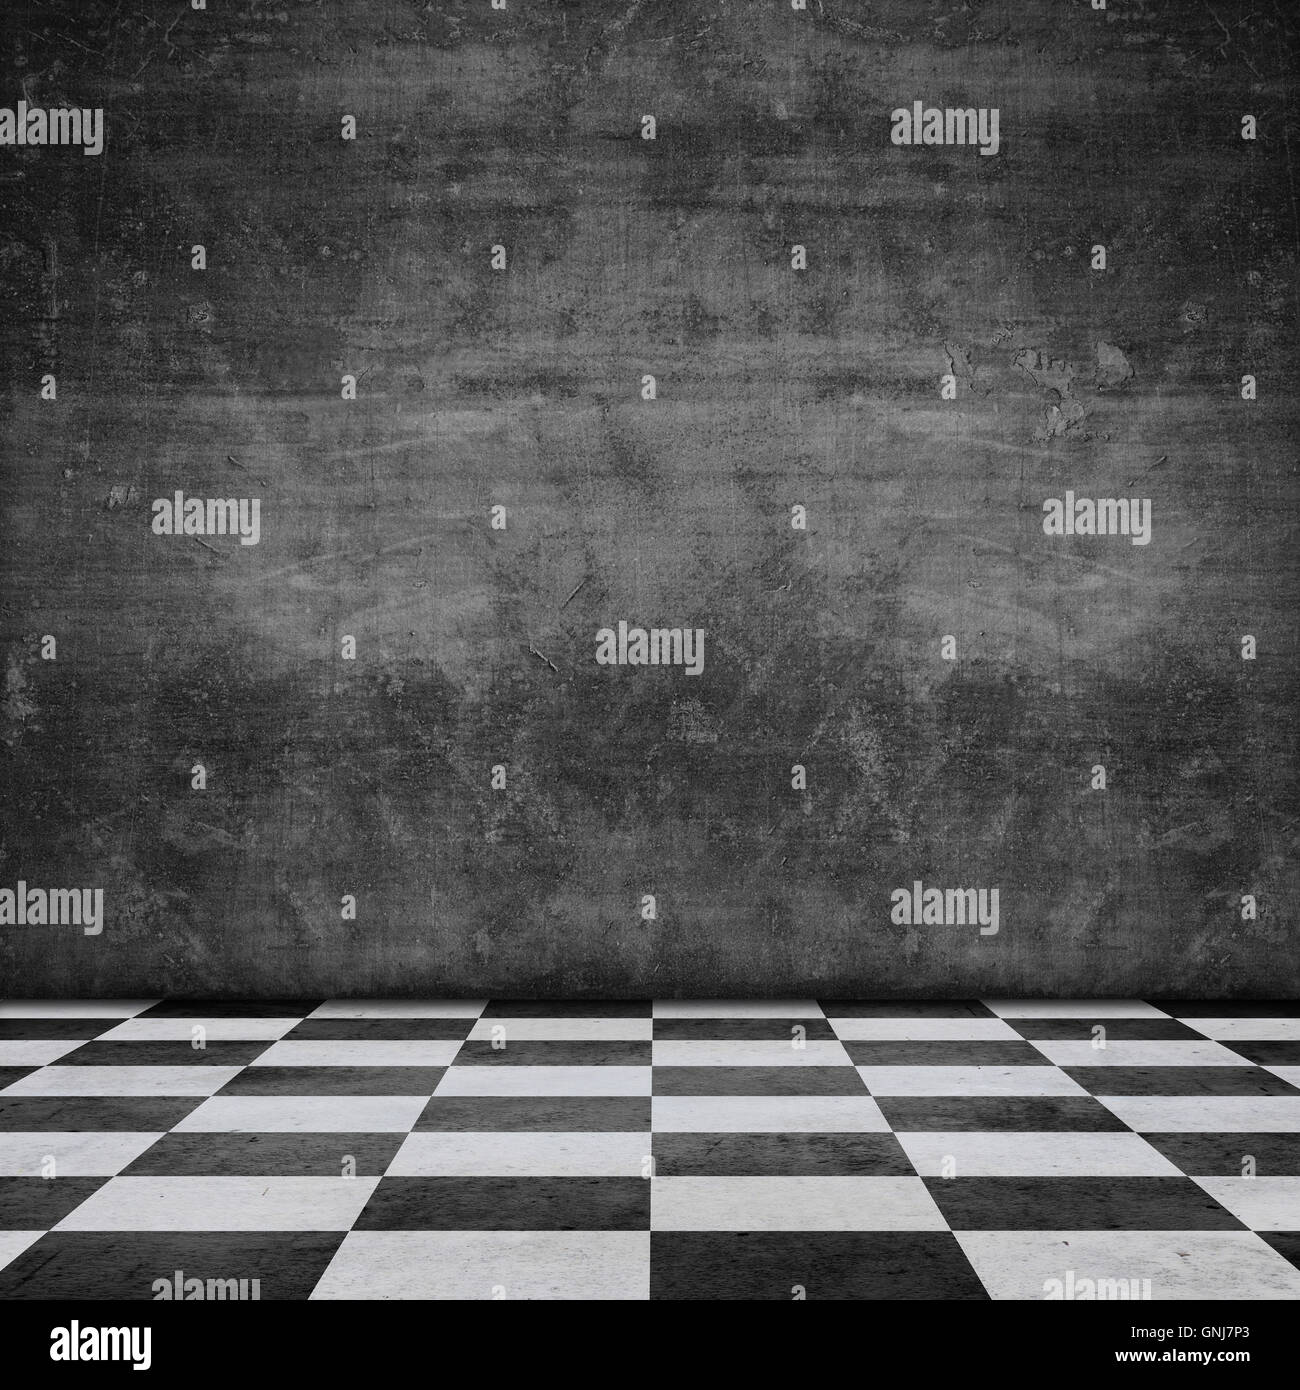 old scratched black wall chequered pattern floor, stage - Stock Image